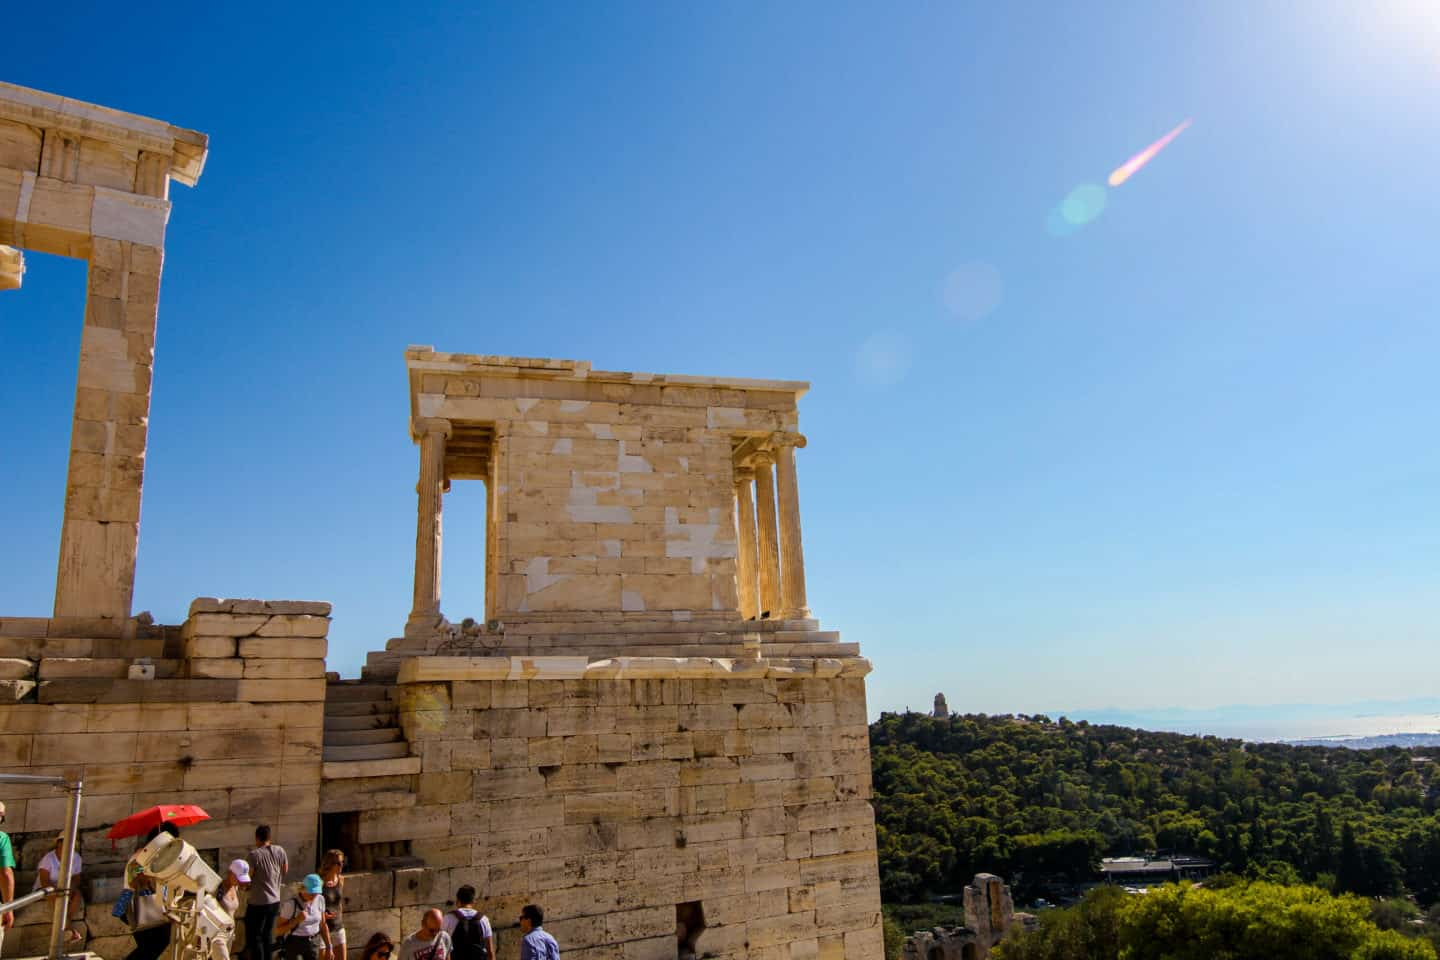 Seeing the temple of Athena Nike is one of the things to do while visiting the Acropolis